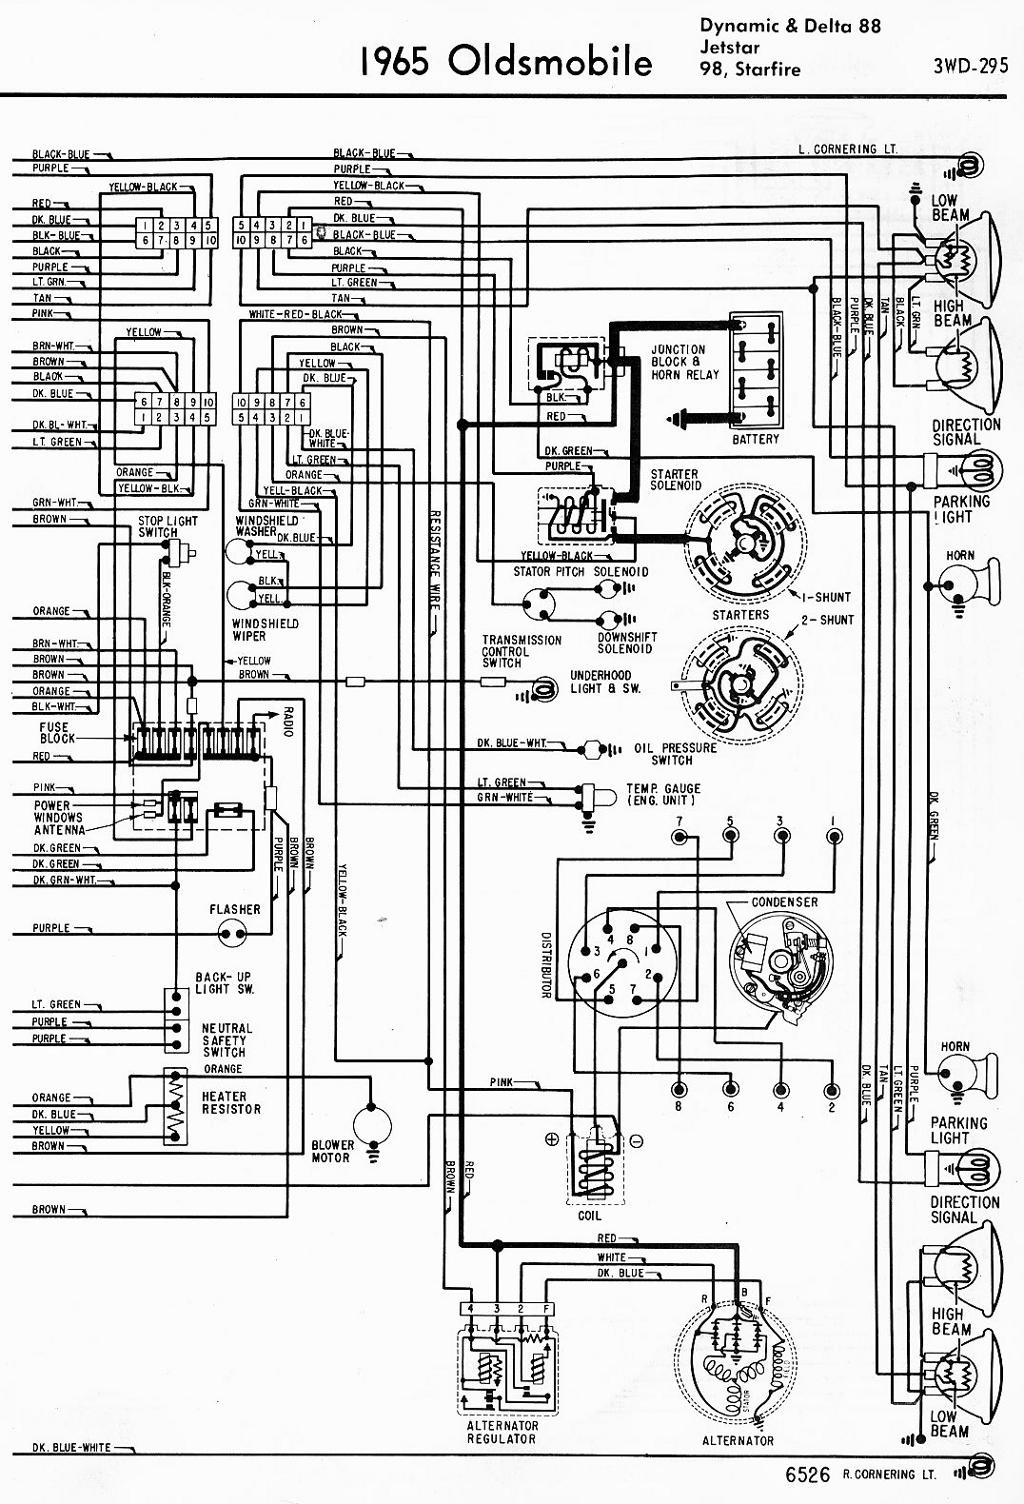 Diagram 97 Olds 88 Wiring Diagram Full Version Hd Quality Wiring Diagram Oilschematics1j Romaindanza It